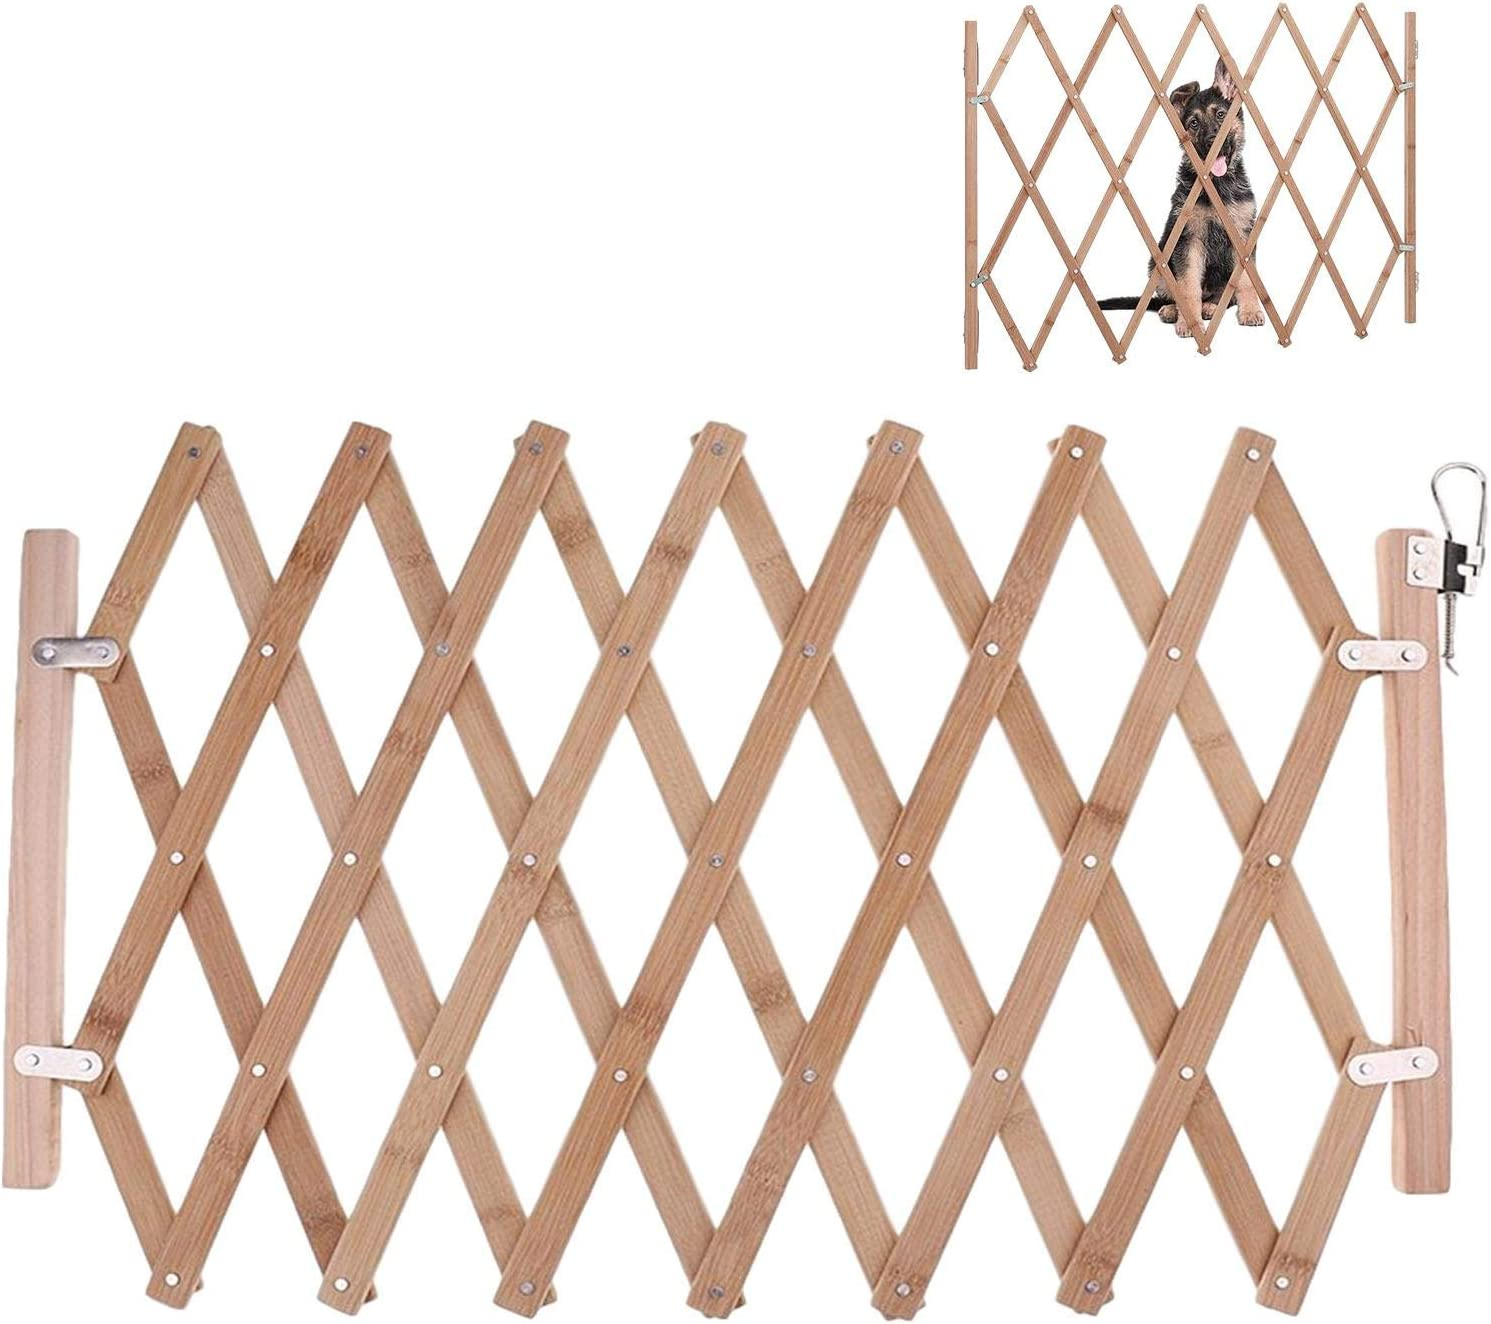 whelsara Telescopic Pet Fence Pet Fence Baby Door Gates Dog Stair Gate Extendable Safety Gate Collapsible Safety Travel Mesh Isolation Net Dog Fence Pet Supplies Protection Net